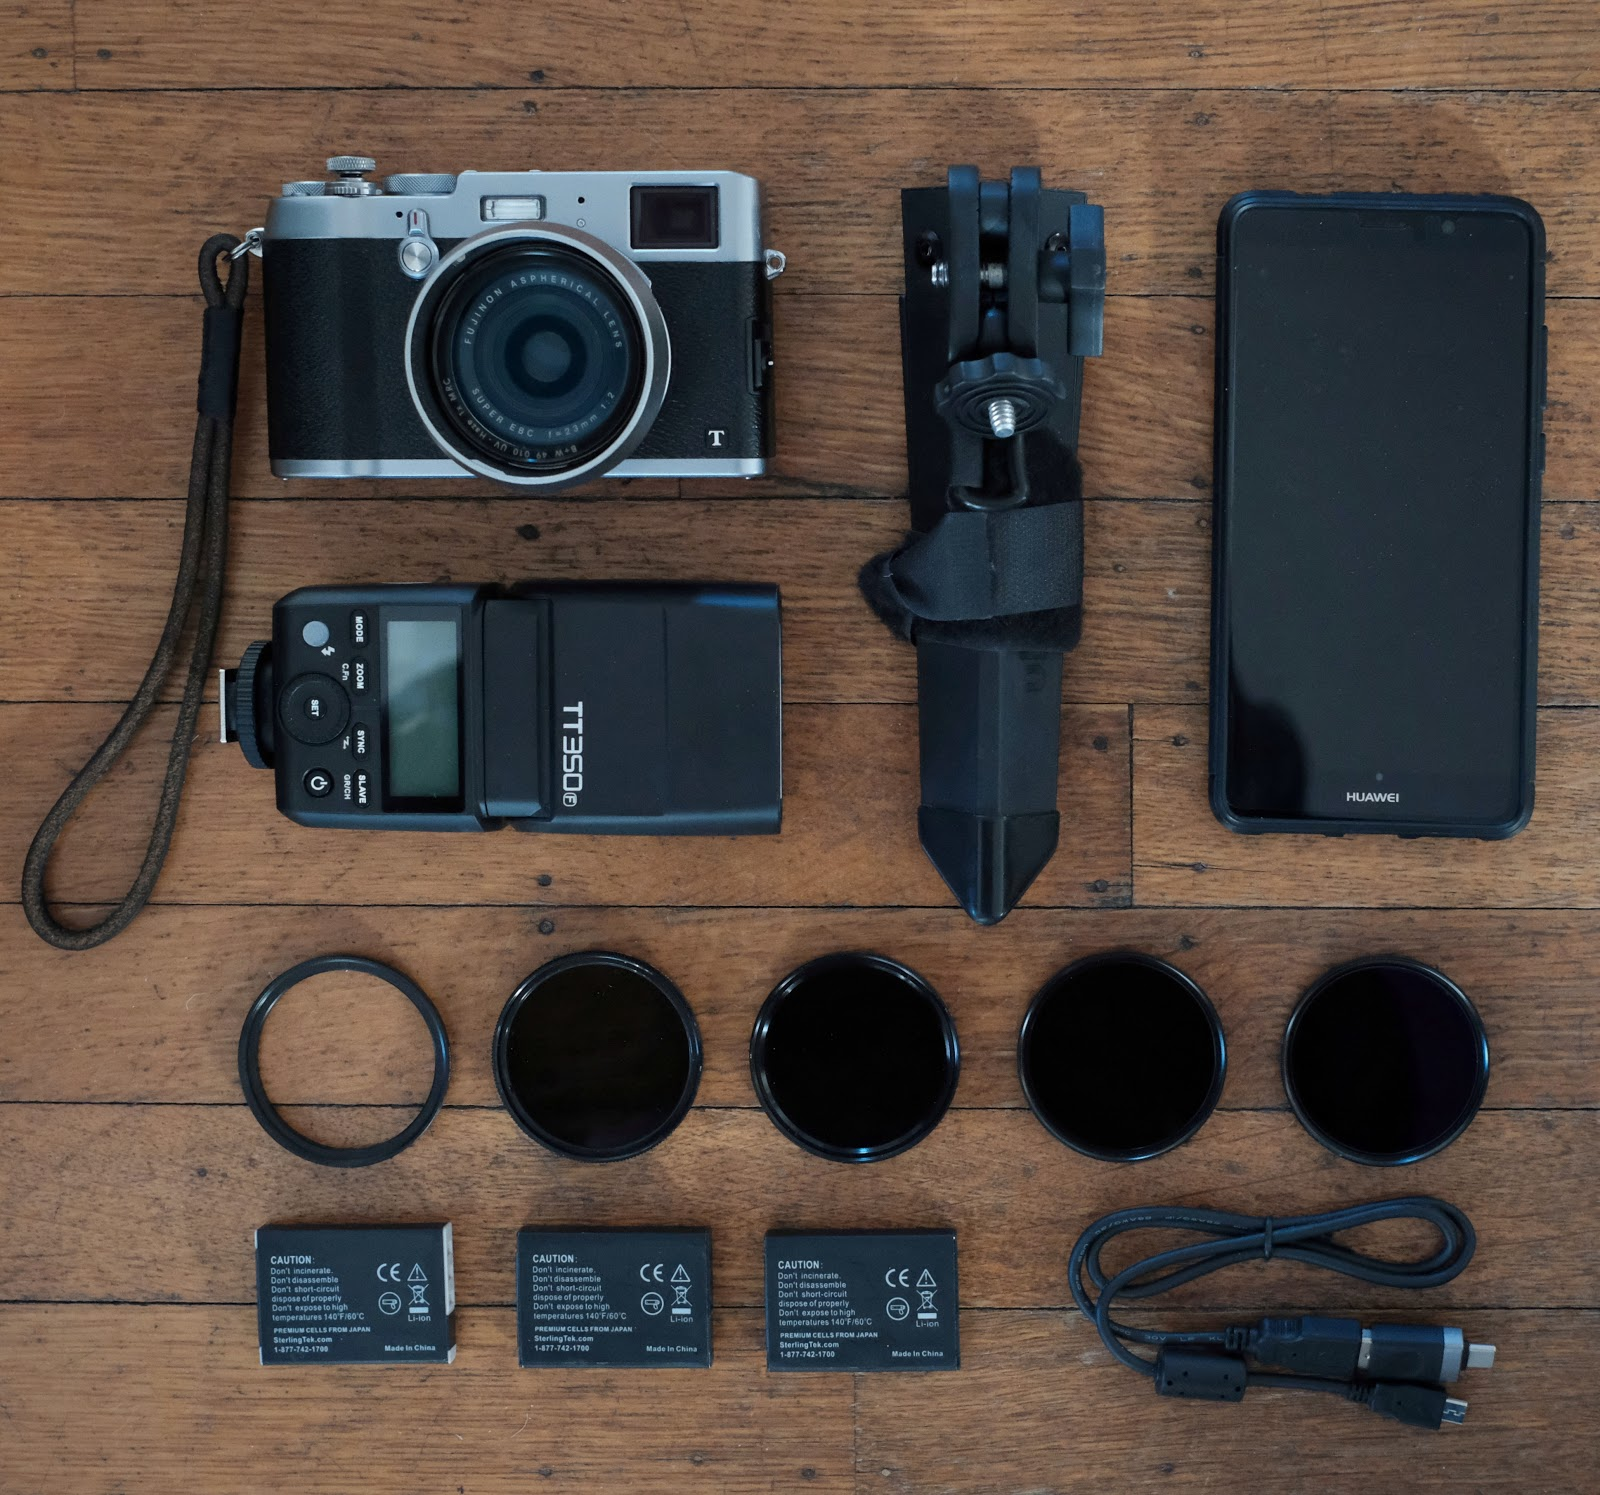 Rethinking Photography with Fujifilm's X100 Series | Michael